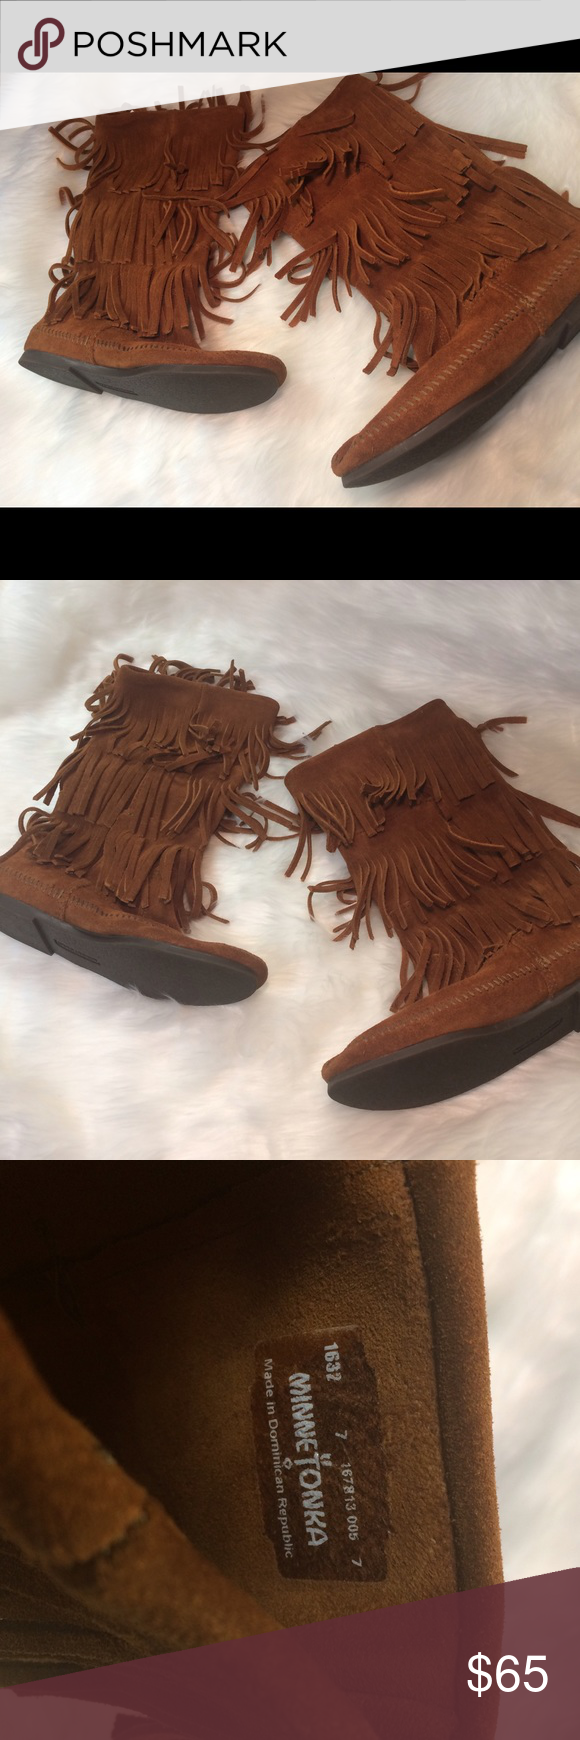 Brown Minnetonka Moccasins Boots 3 Layer Fringe 7 Good condition. Minimal wear/staining. Minnetonka Shoes Moccasins